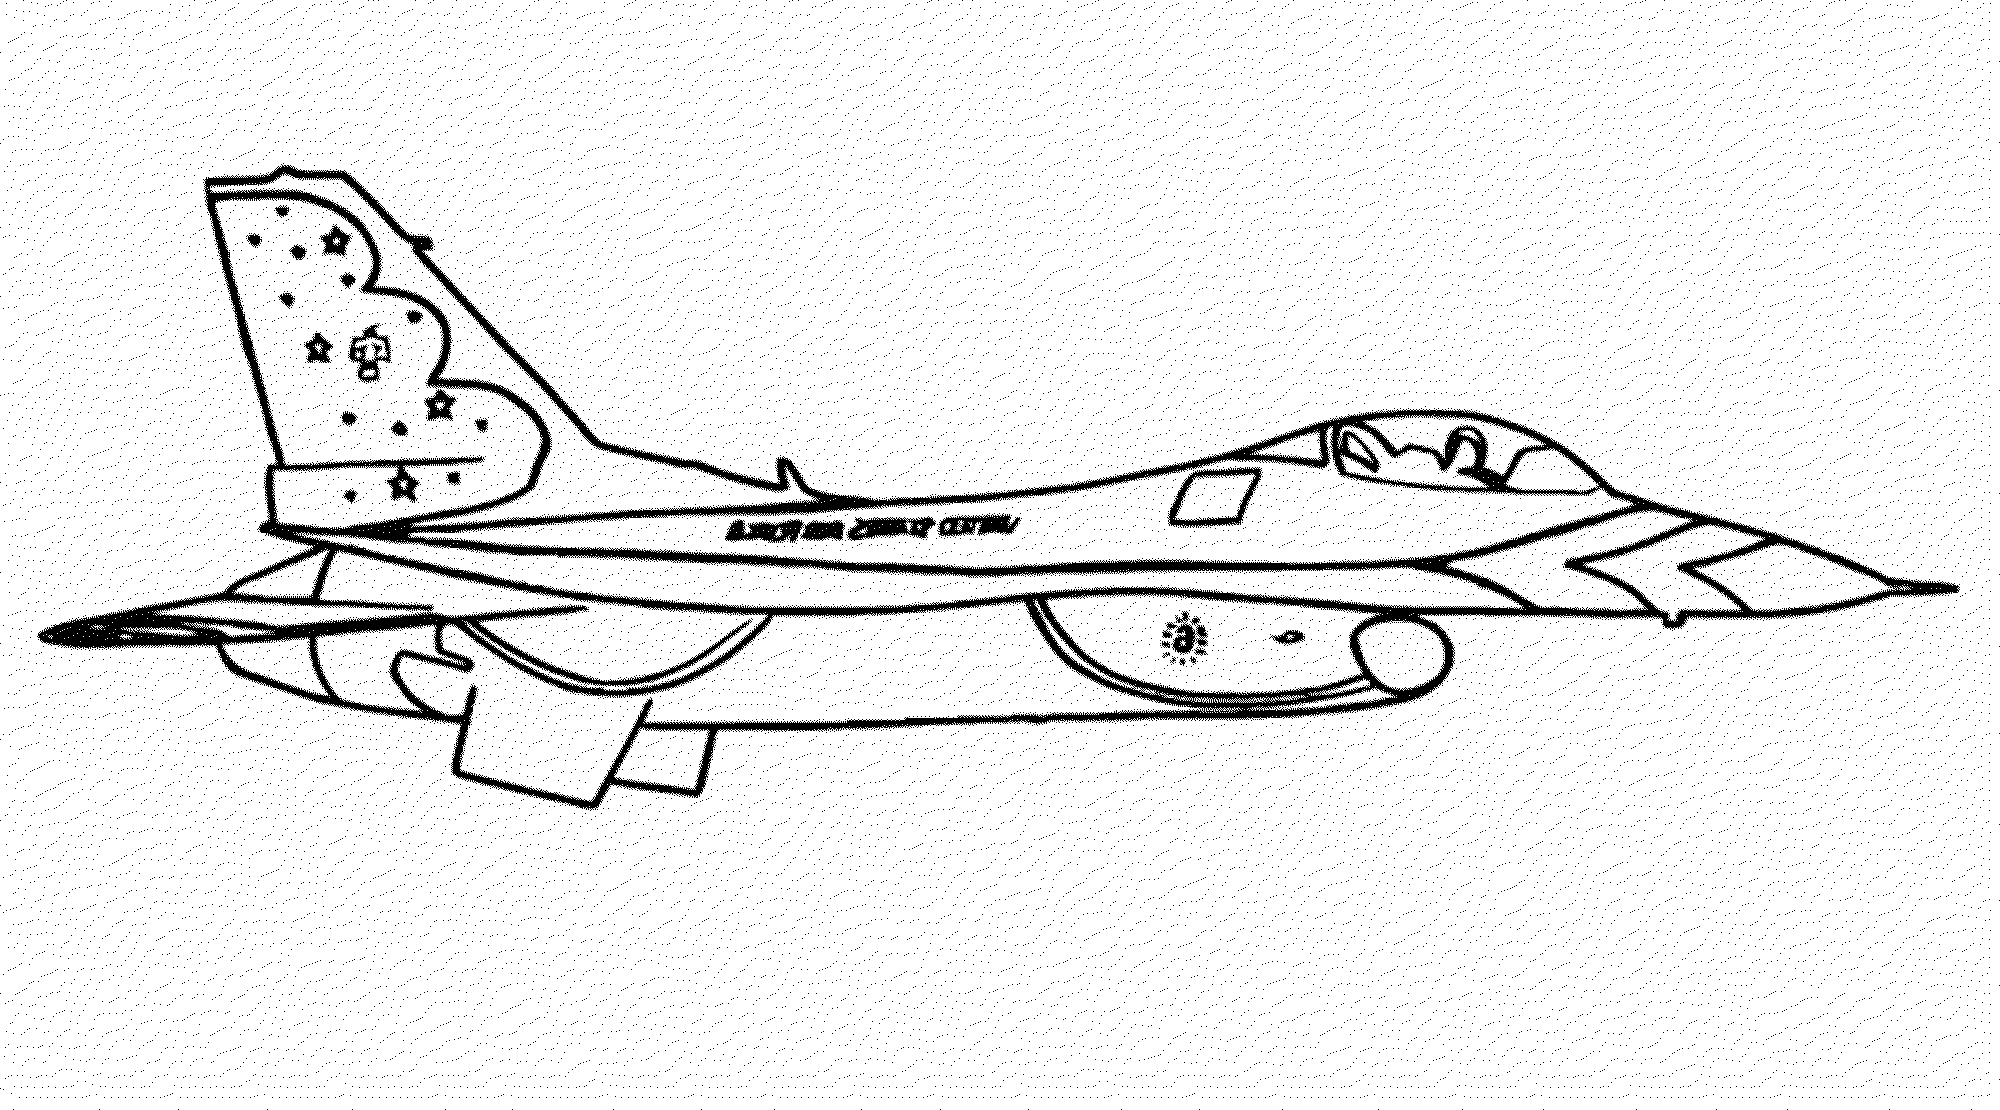 armyirplane coloring pages 2020 Airplane coloring